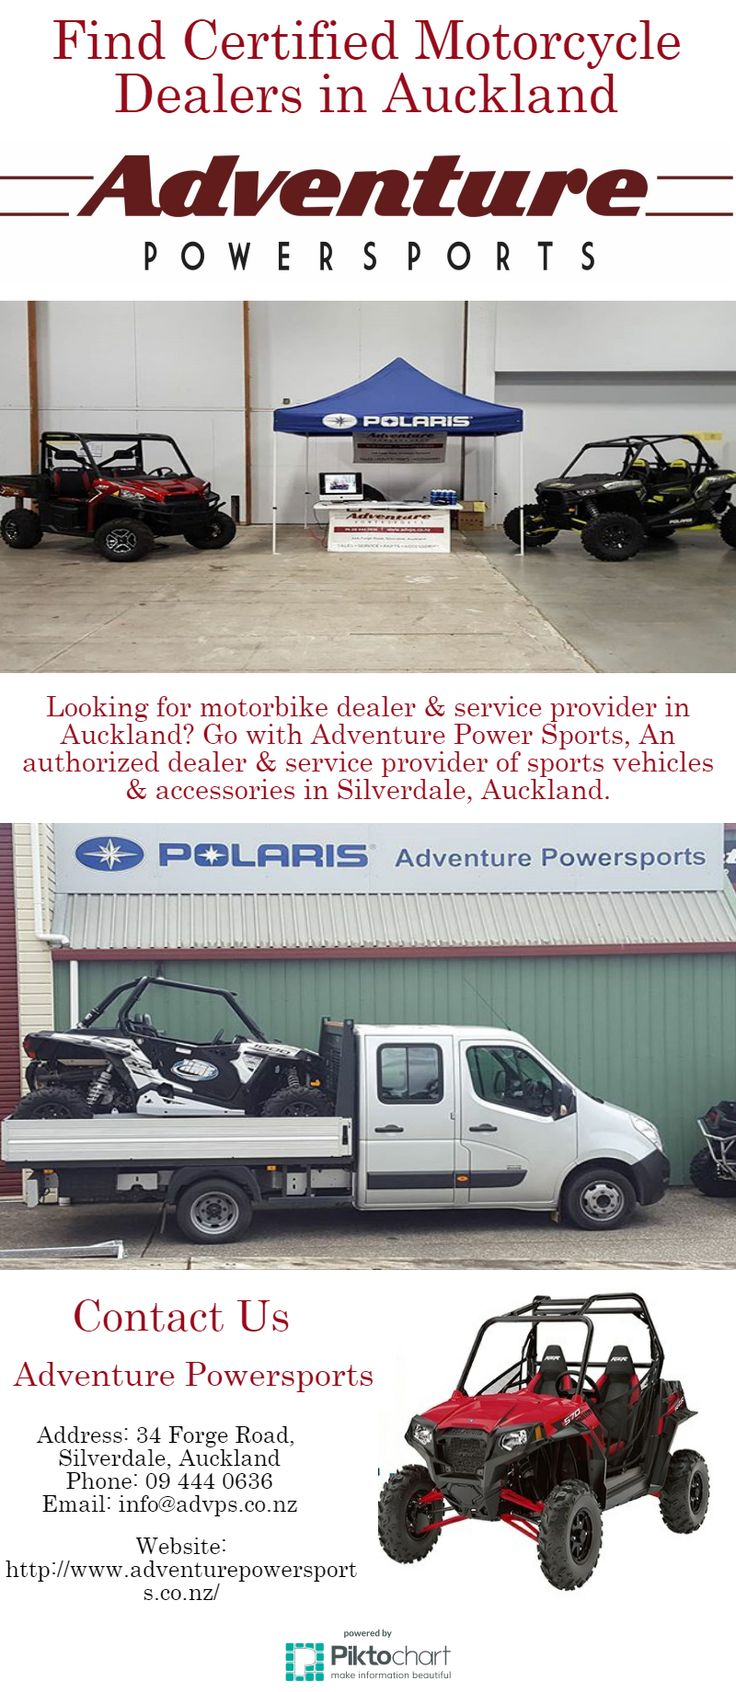 Looking for motorbike dealer & service provider in Auckland? Go with Adventure Power Sports, An authorized dealer & service provider of sports vehicles & accessories in Silverdale, Auckland.